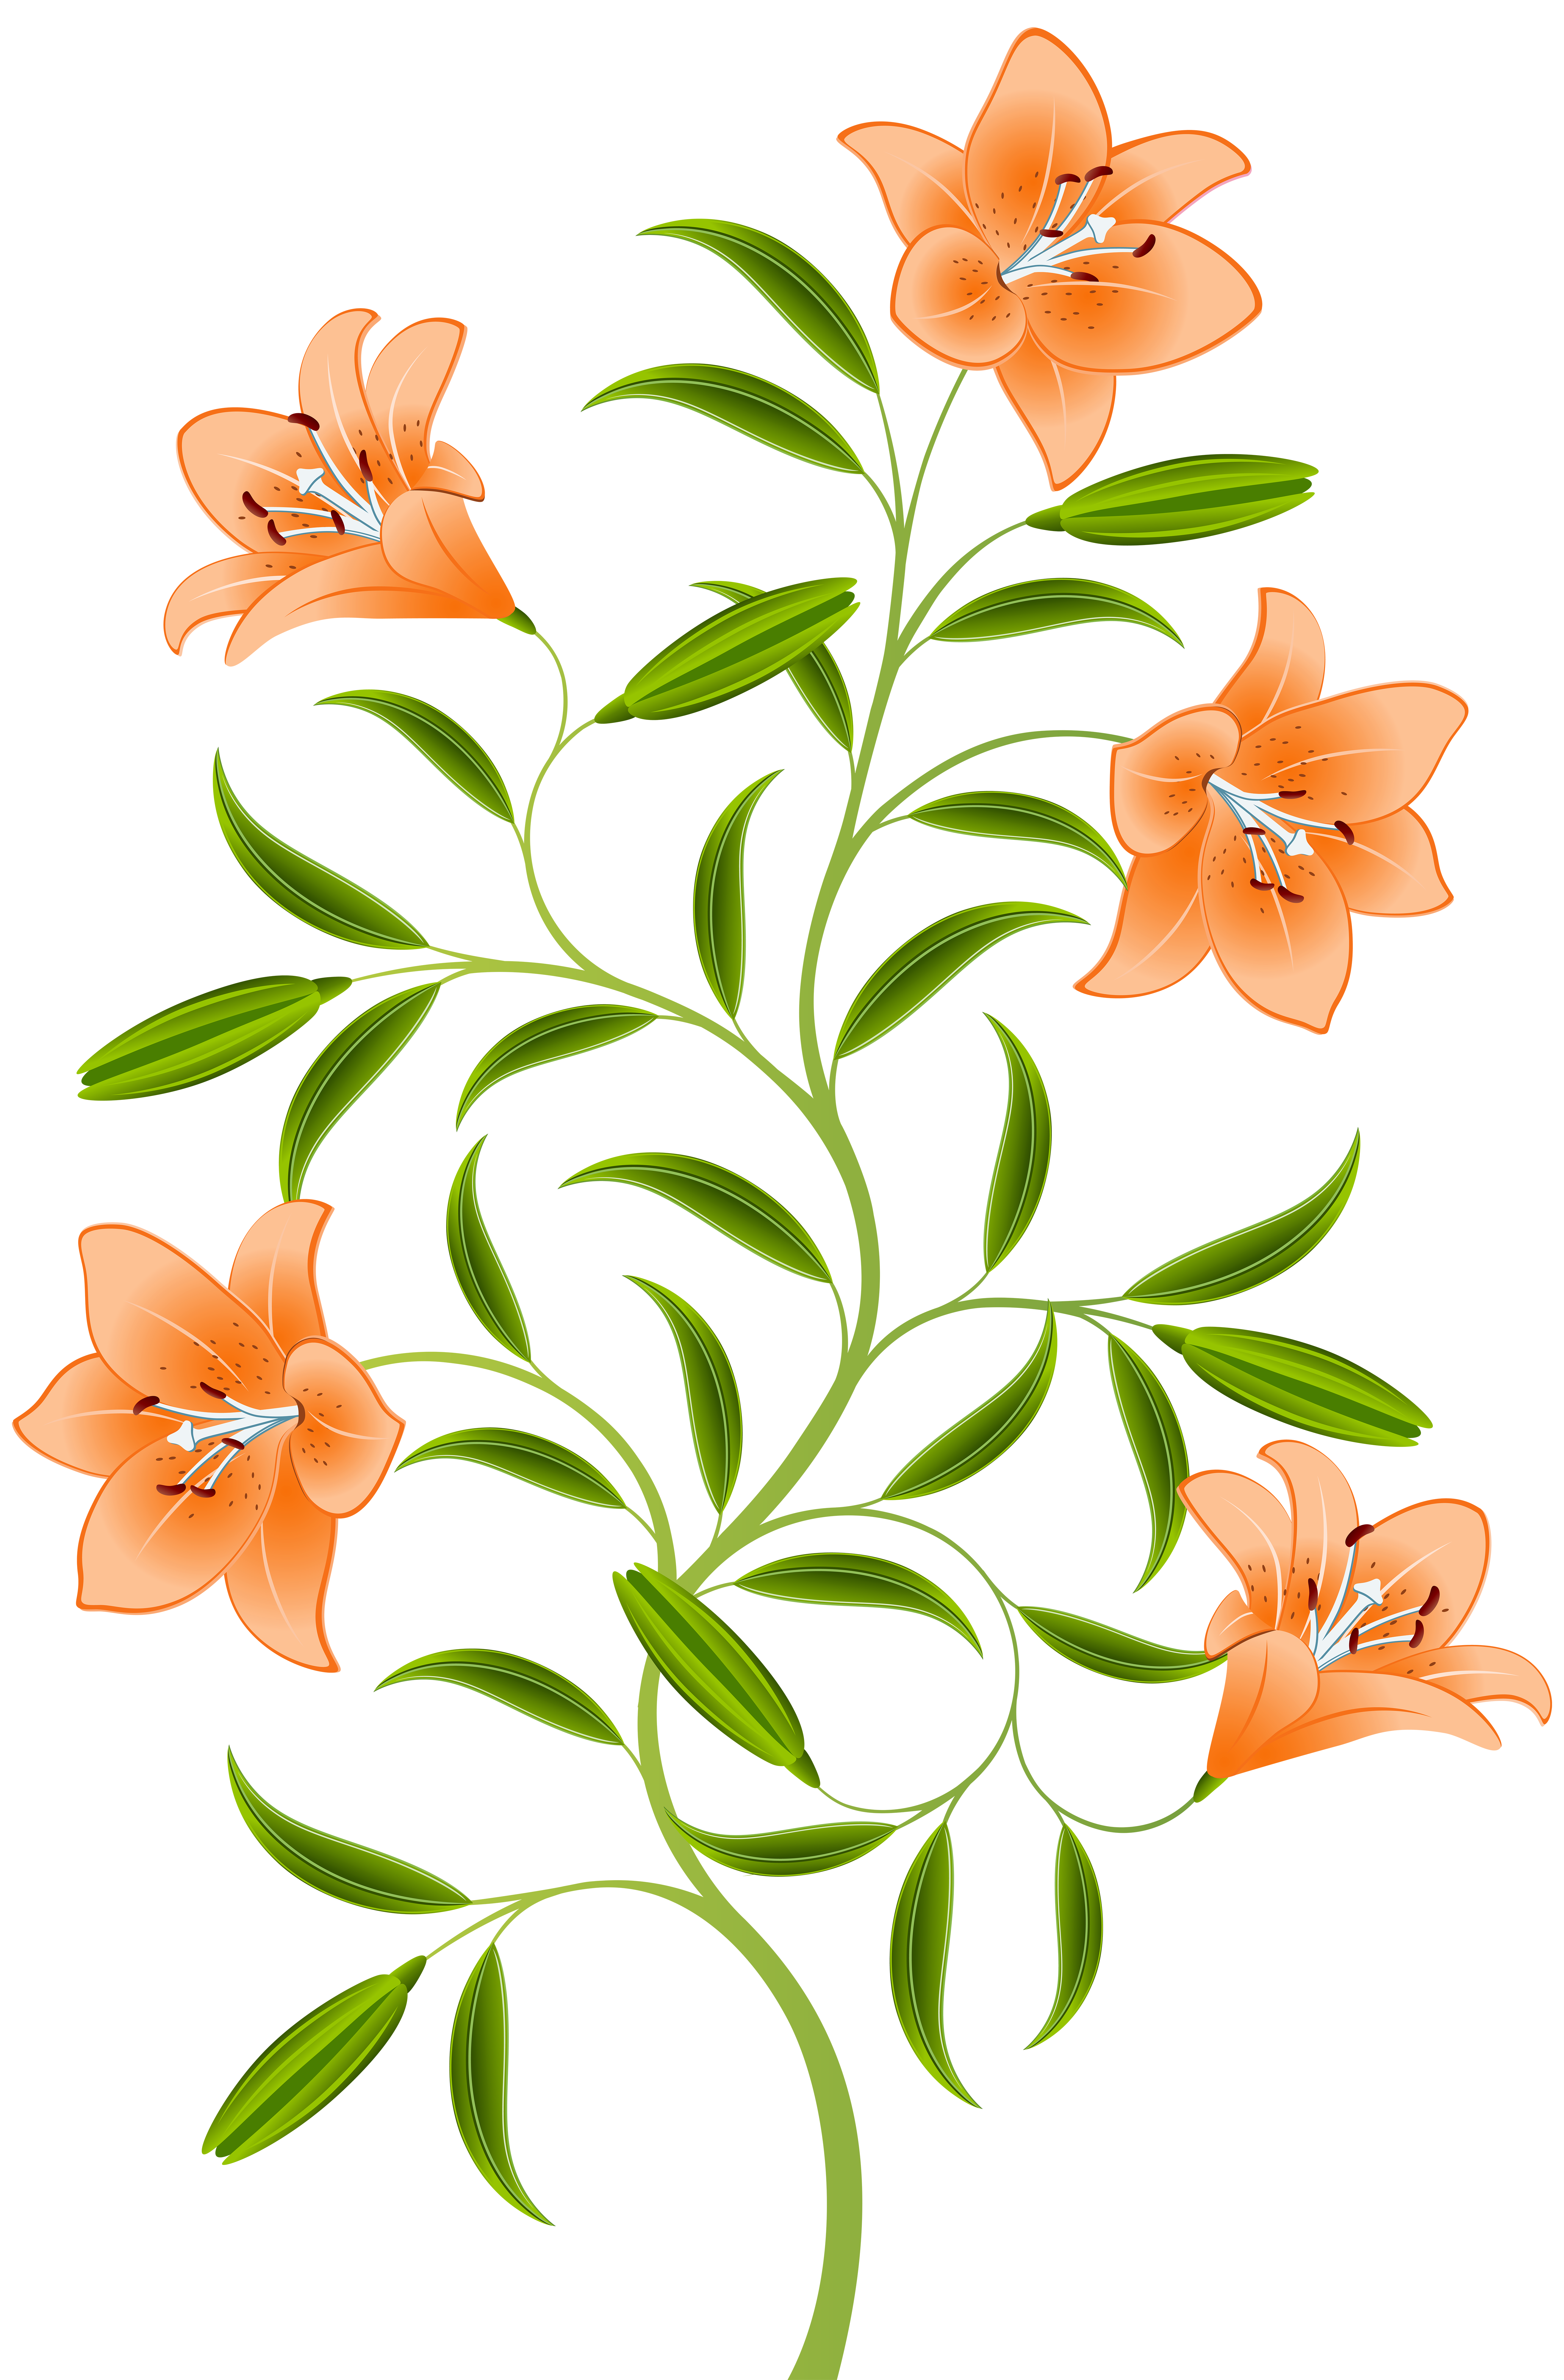 Lily clipart orange lily. Png clip art image